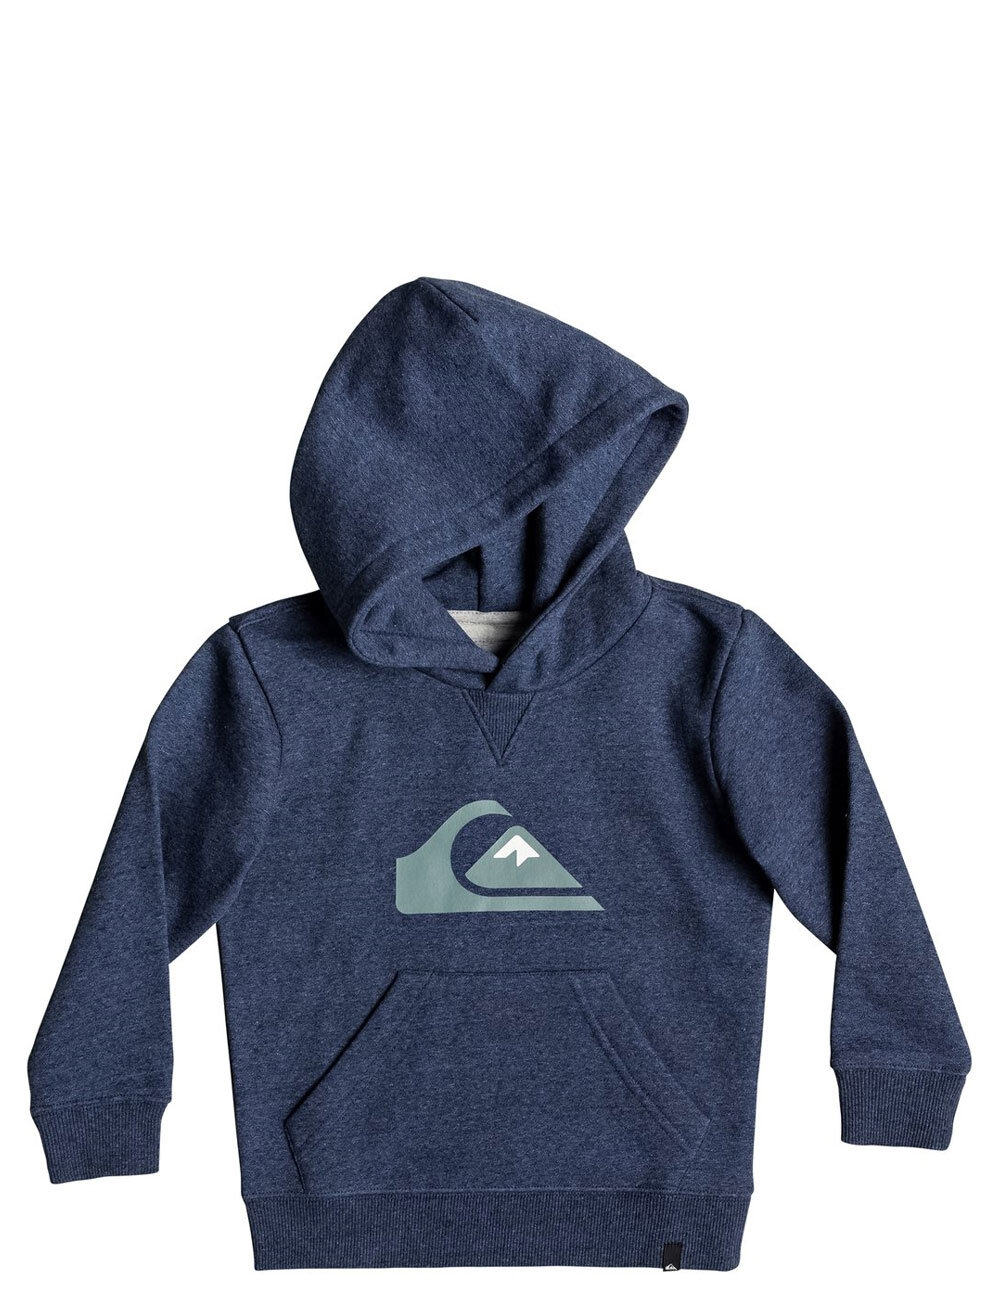 size 40 ff91b a5ba4 KIDS BIG LOGO HOOD - Boy s Clothing   Surf Clothing   Streetwear   Children    Toddlers - QUIKSILVER W19